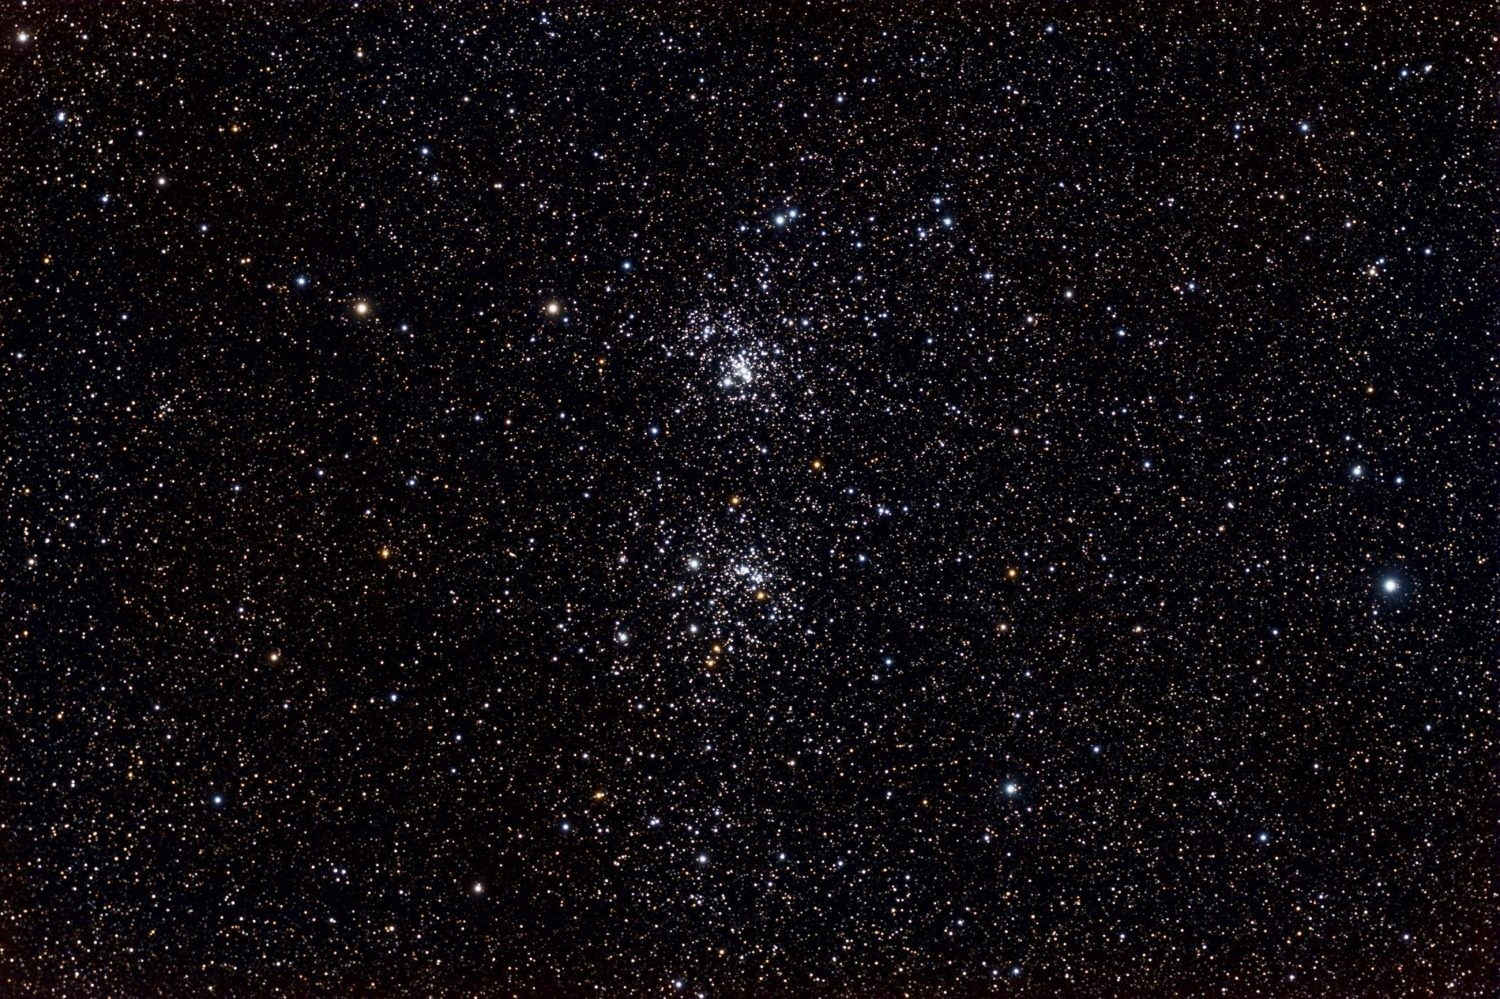 Caldwell 14 - The Double Cluster taken by /u/ItFrightensMe, https://en.wikipedia.org/wiki/Double_Cluster#/media/File:Double_Cluster.jpg, CC BY-SA 3.0